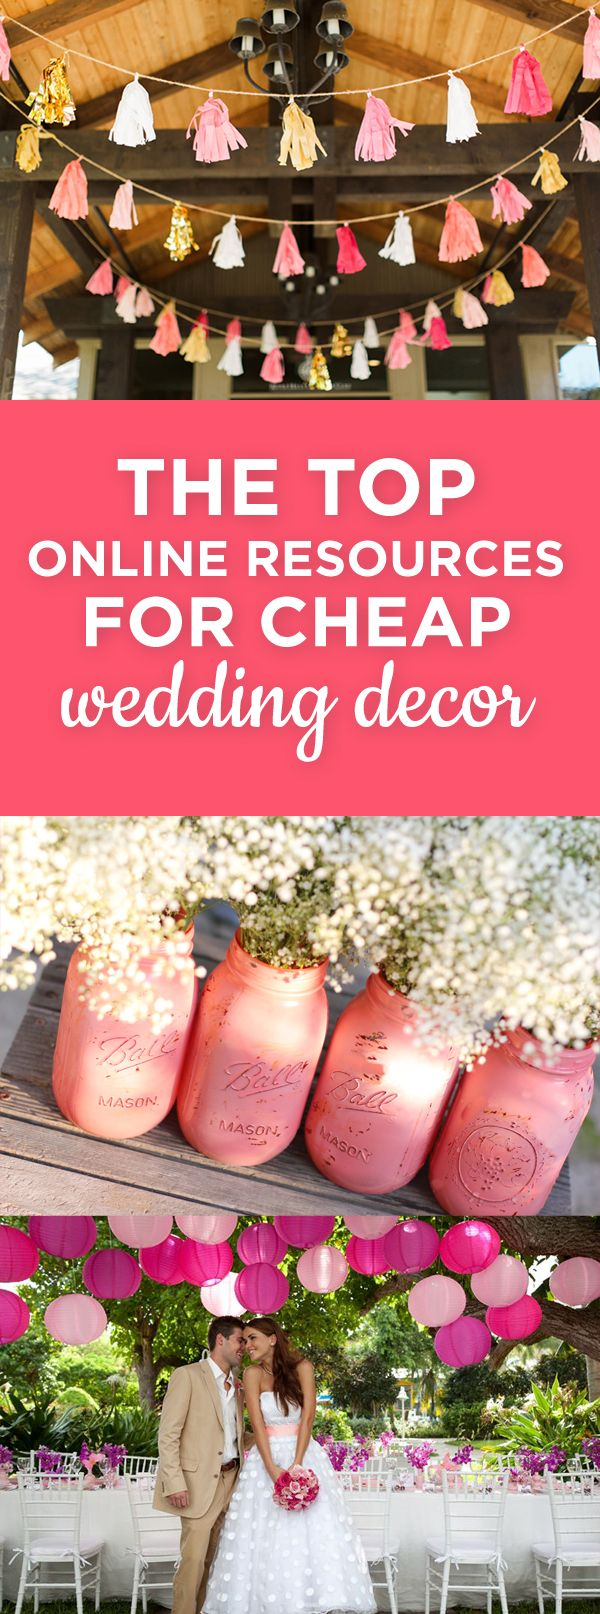 Best 210 Wedding Reception Ideas ideas on Pinterest | Wedding ideas ...